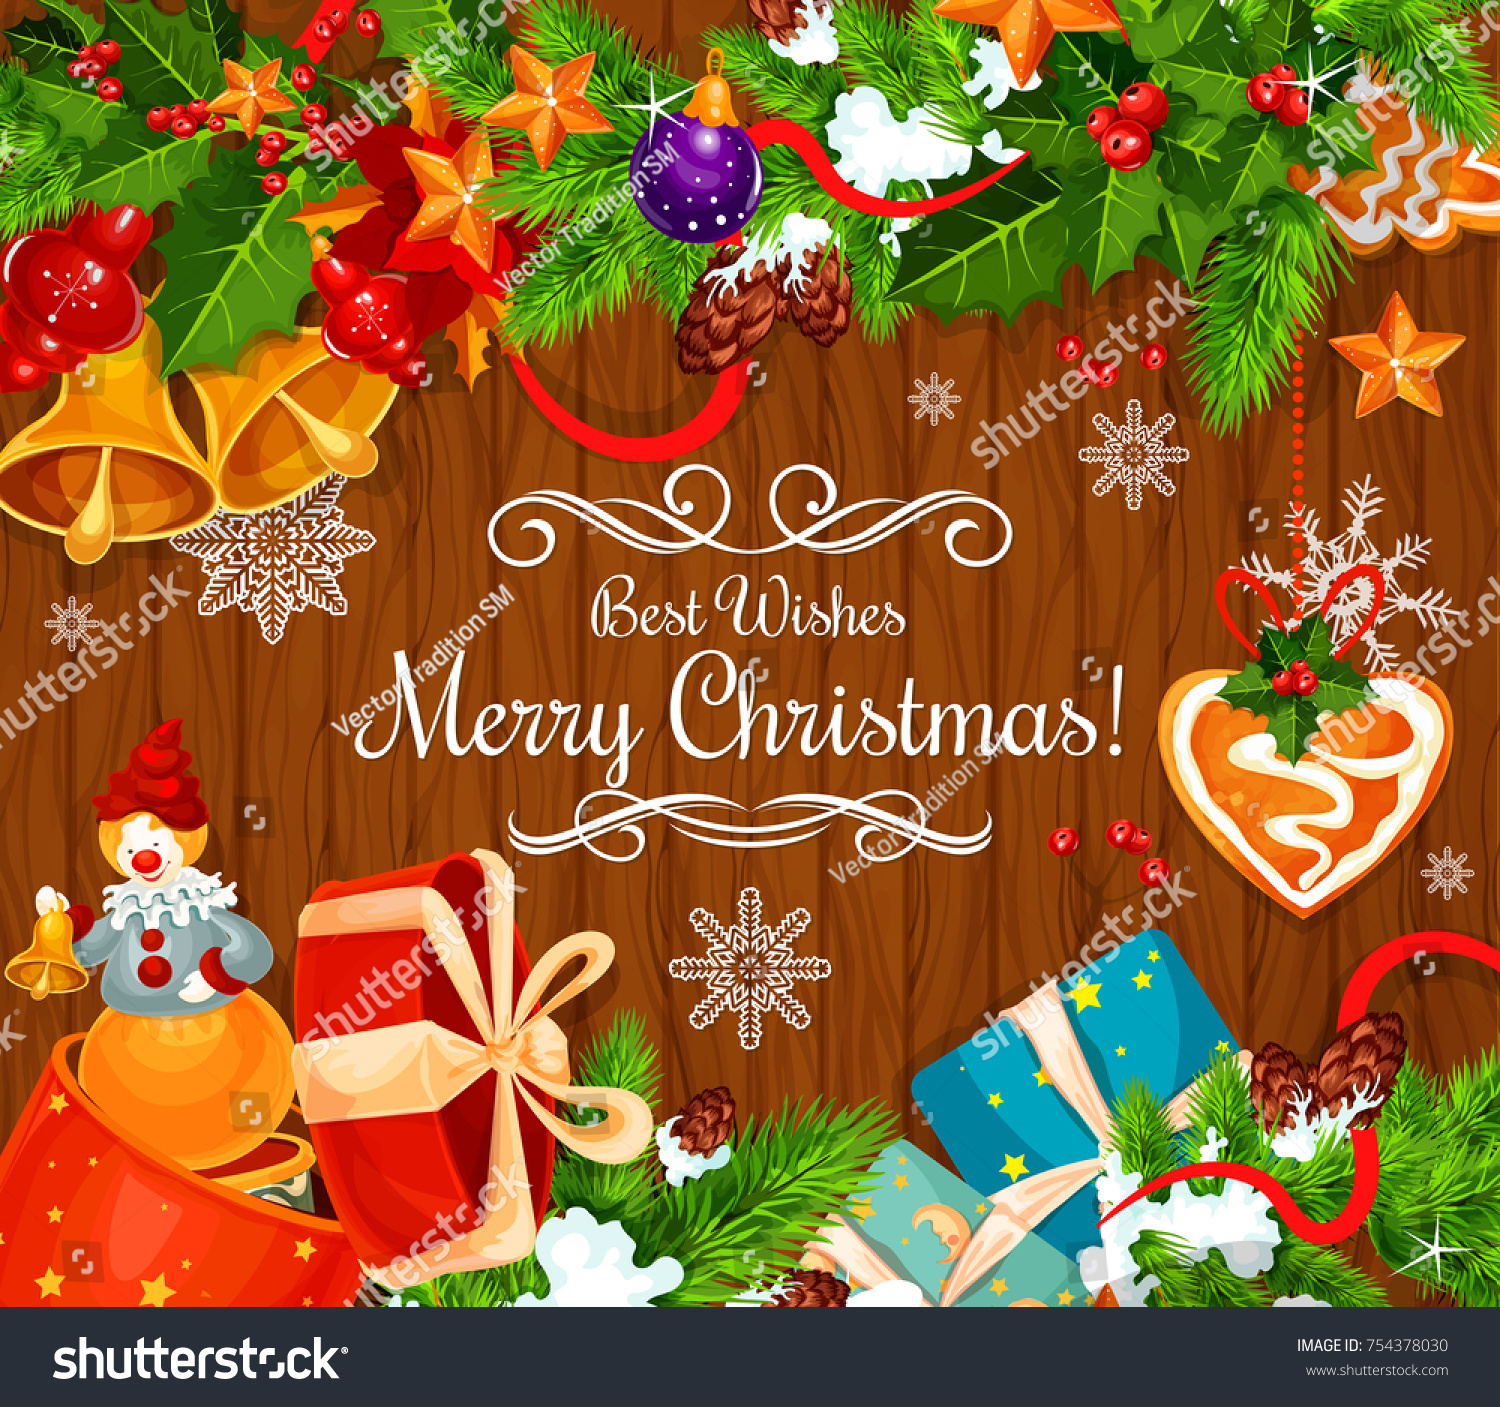 Merry Christmas Best Wishes Greeting Card Stock Vector Royalty Free